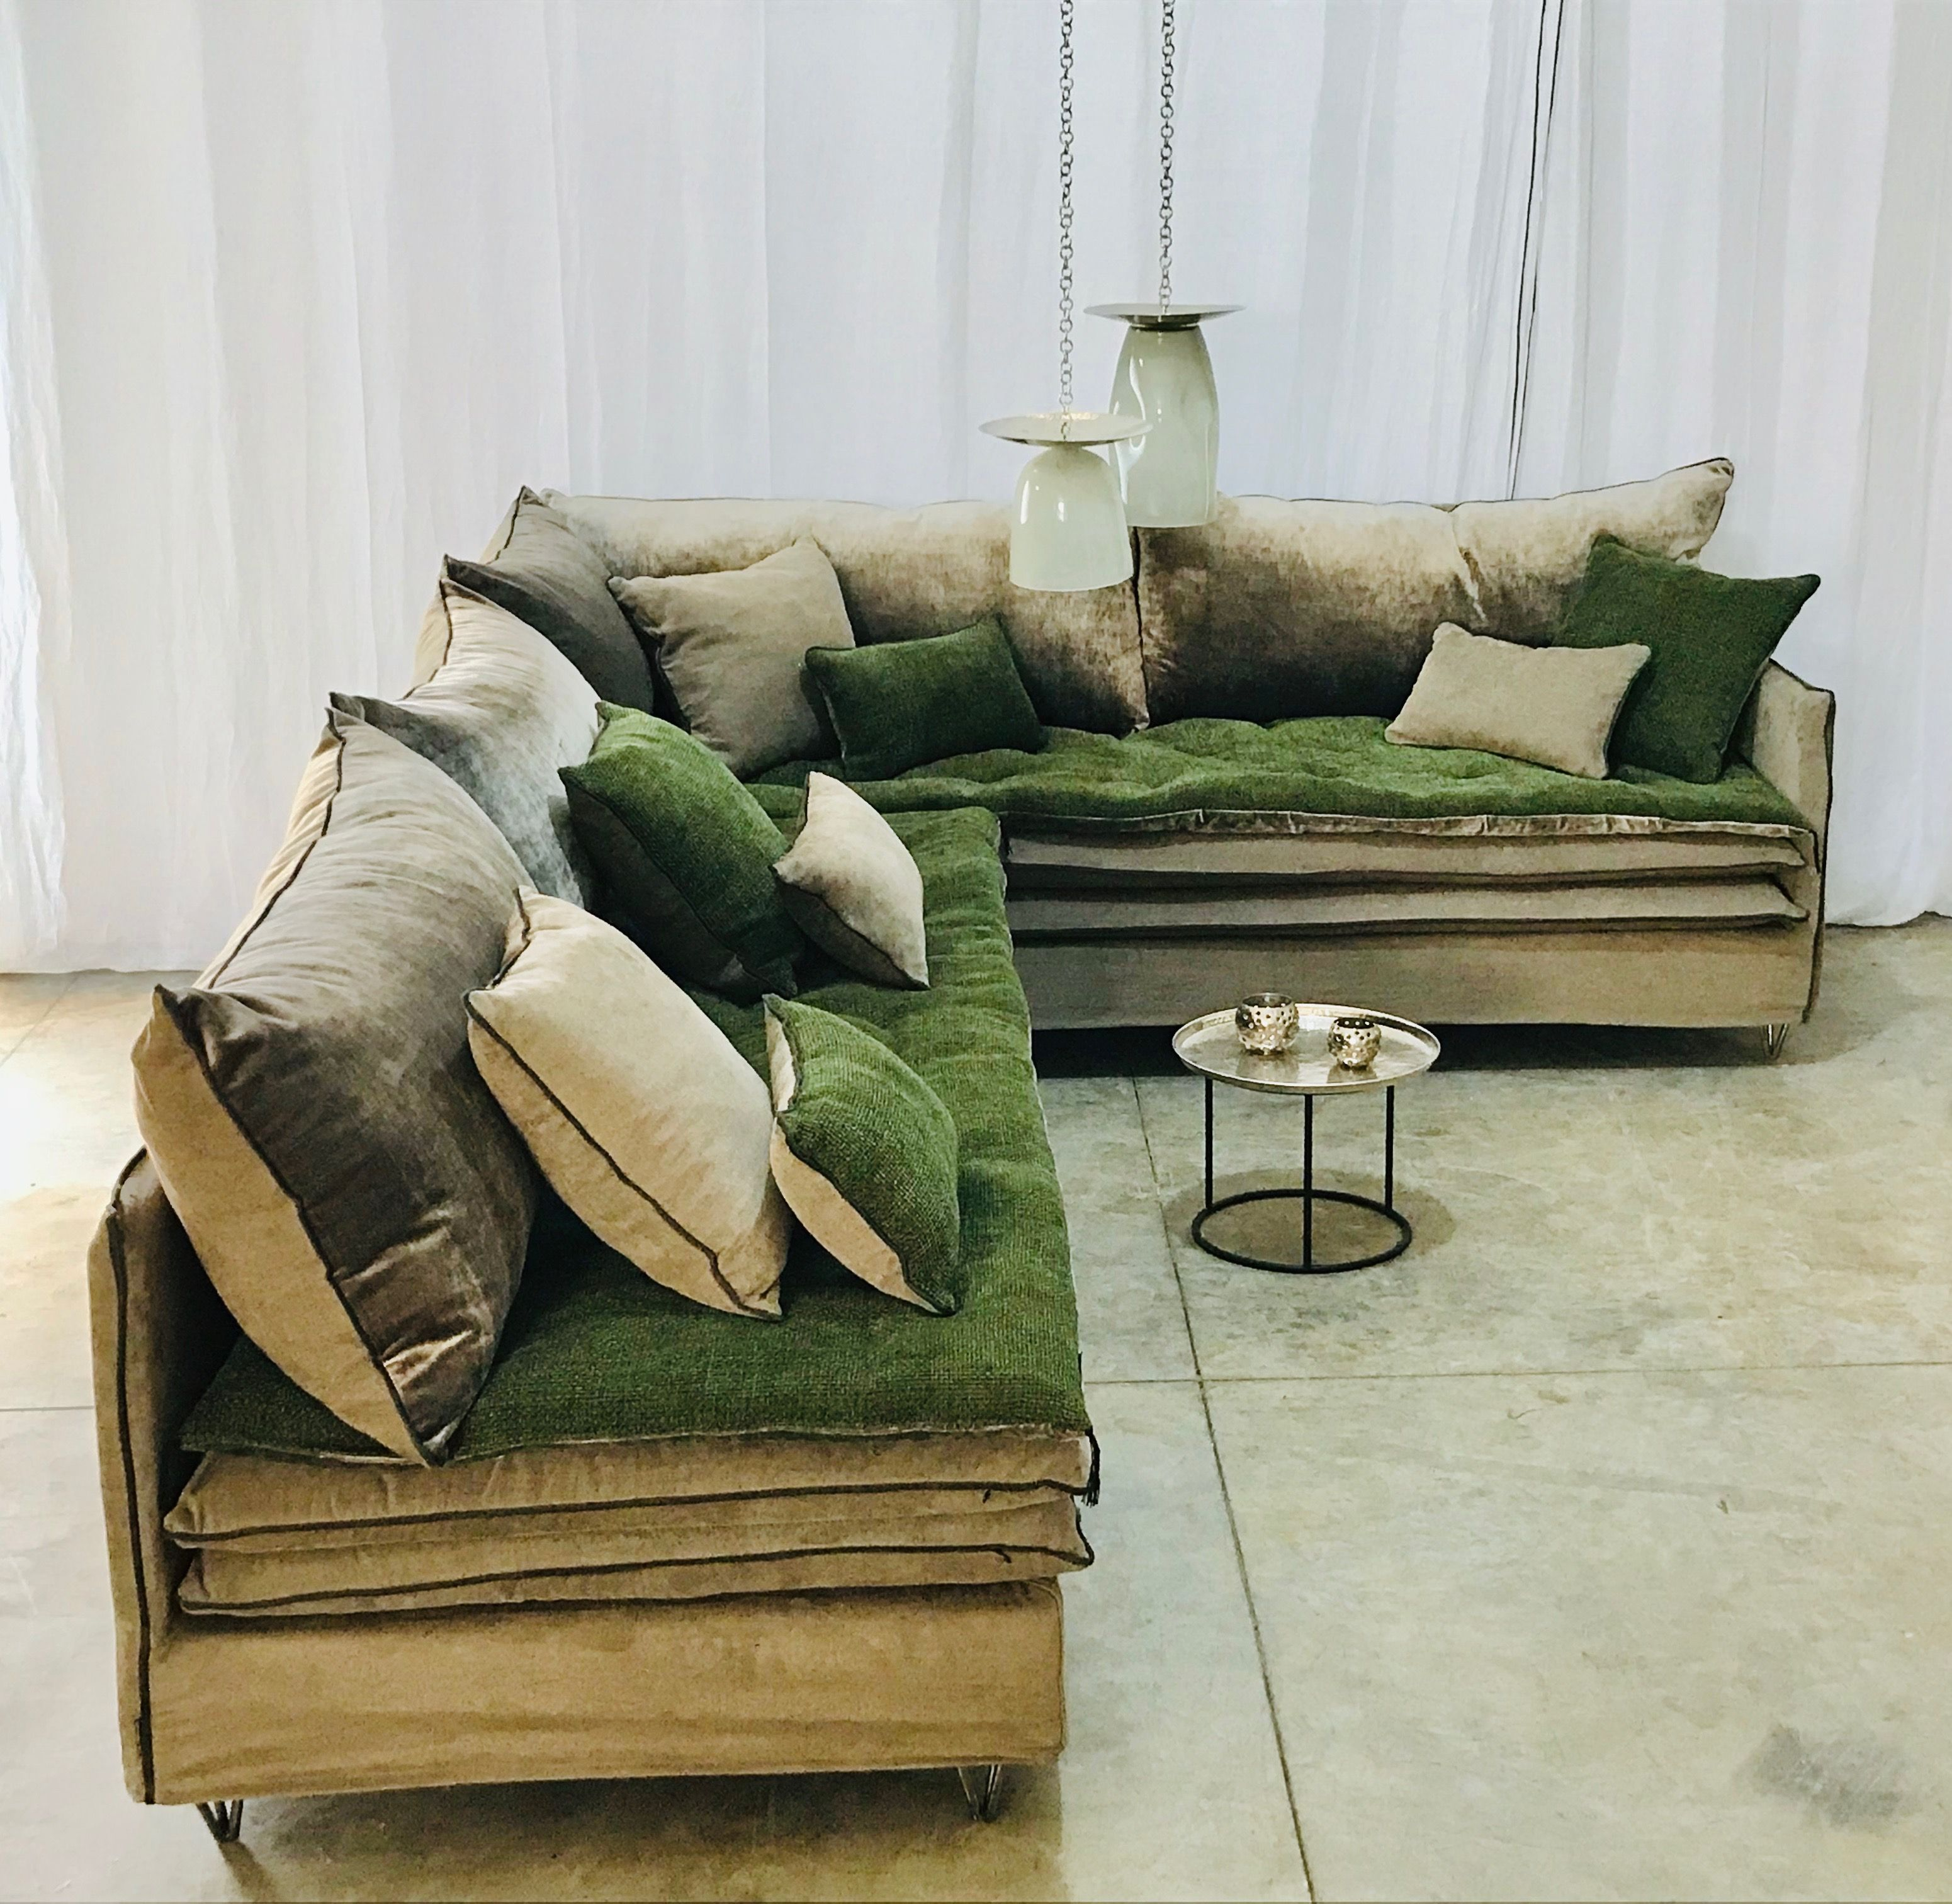 Sofa Cover Resto Zahara Chenille Soft Washed Emeraude Verso Velours Tsar Ecorce Canape Angle Banc Salle A Manger Canape